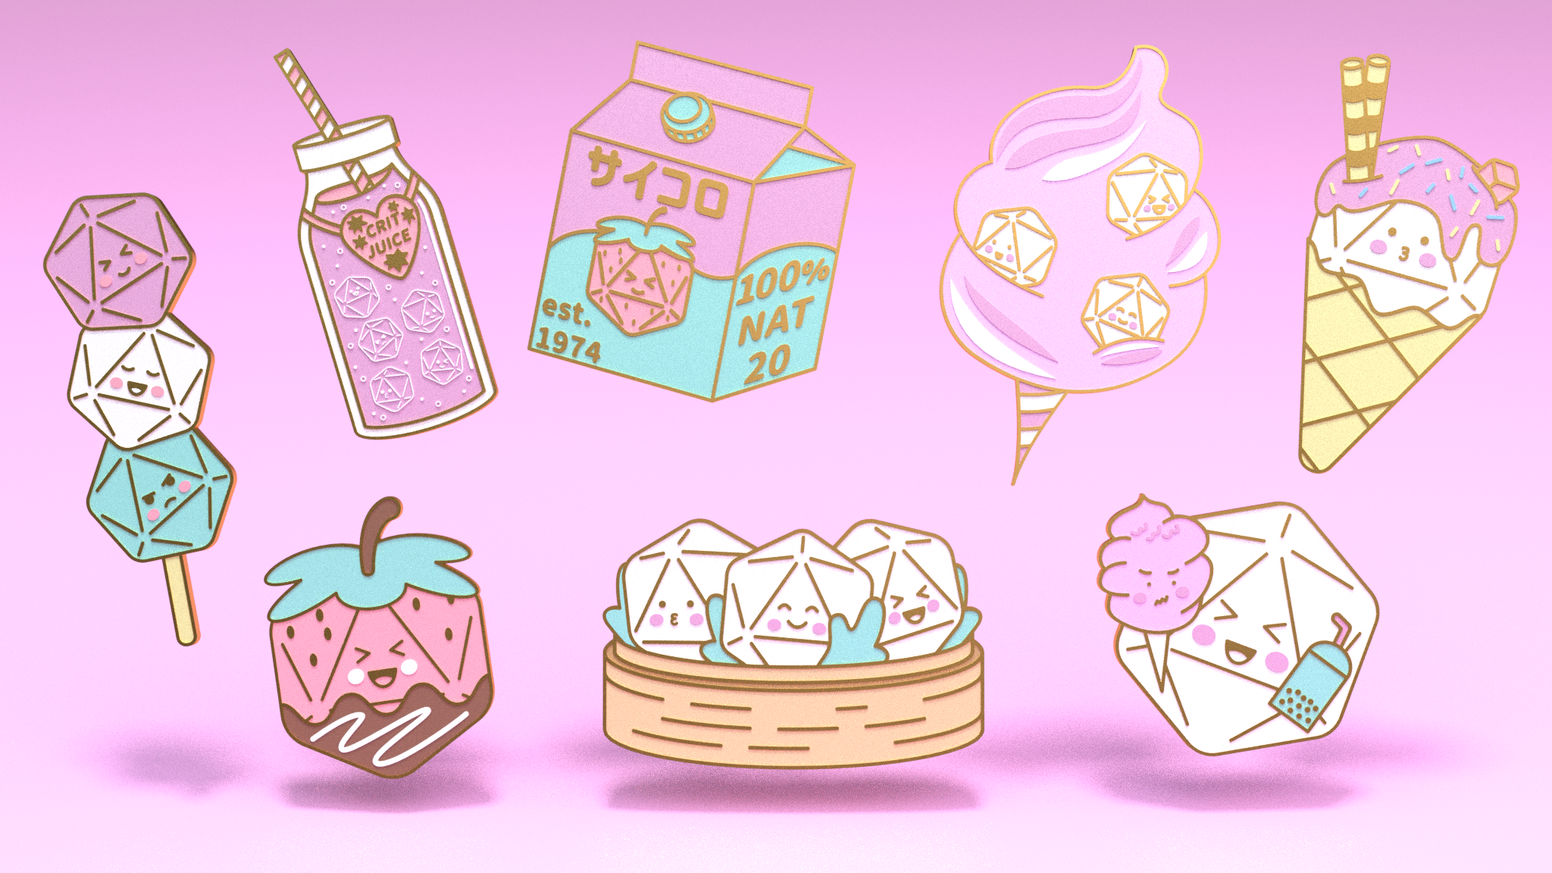 A set of Dice enamel pins mixed with delicious food!